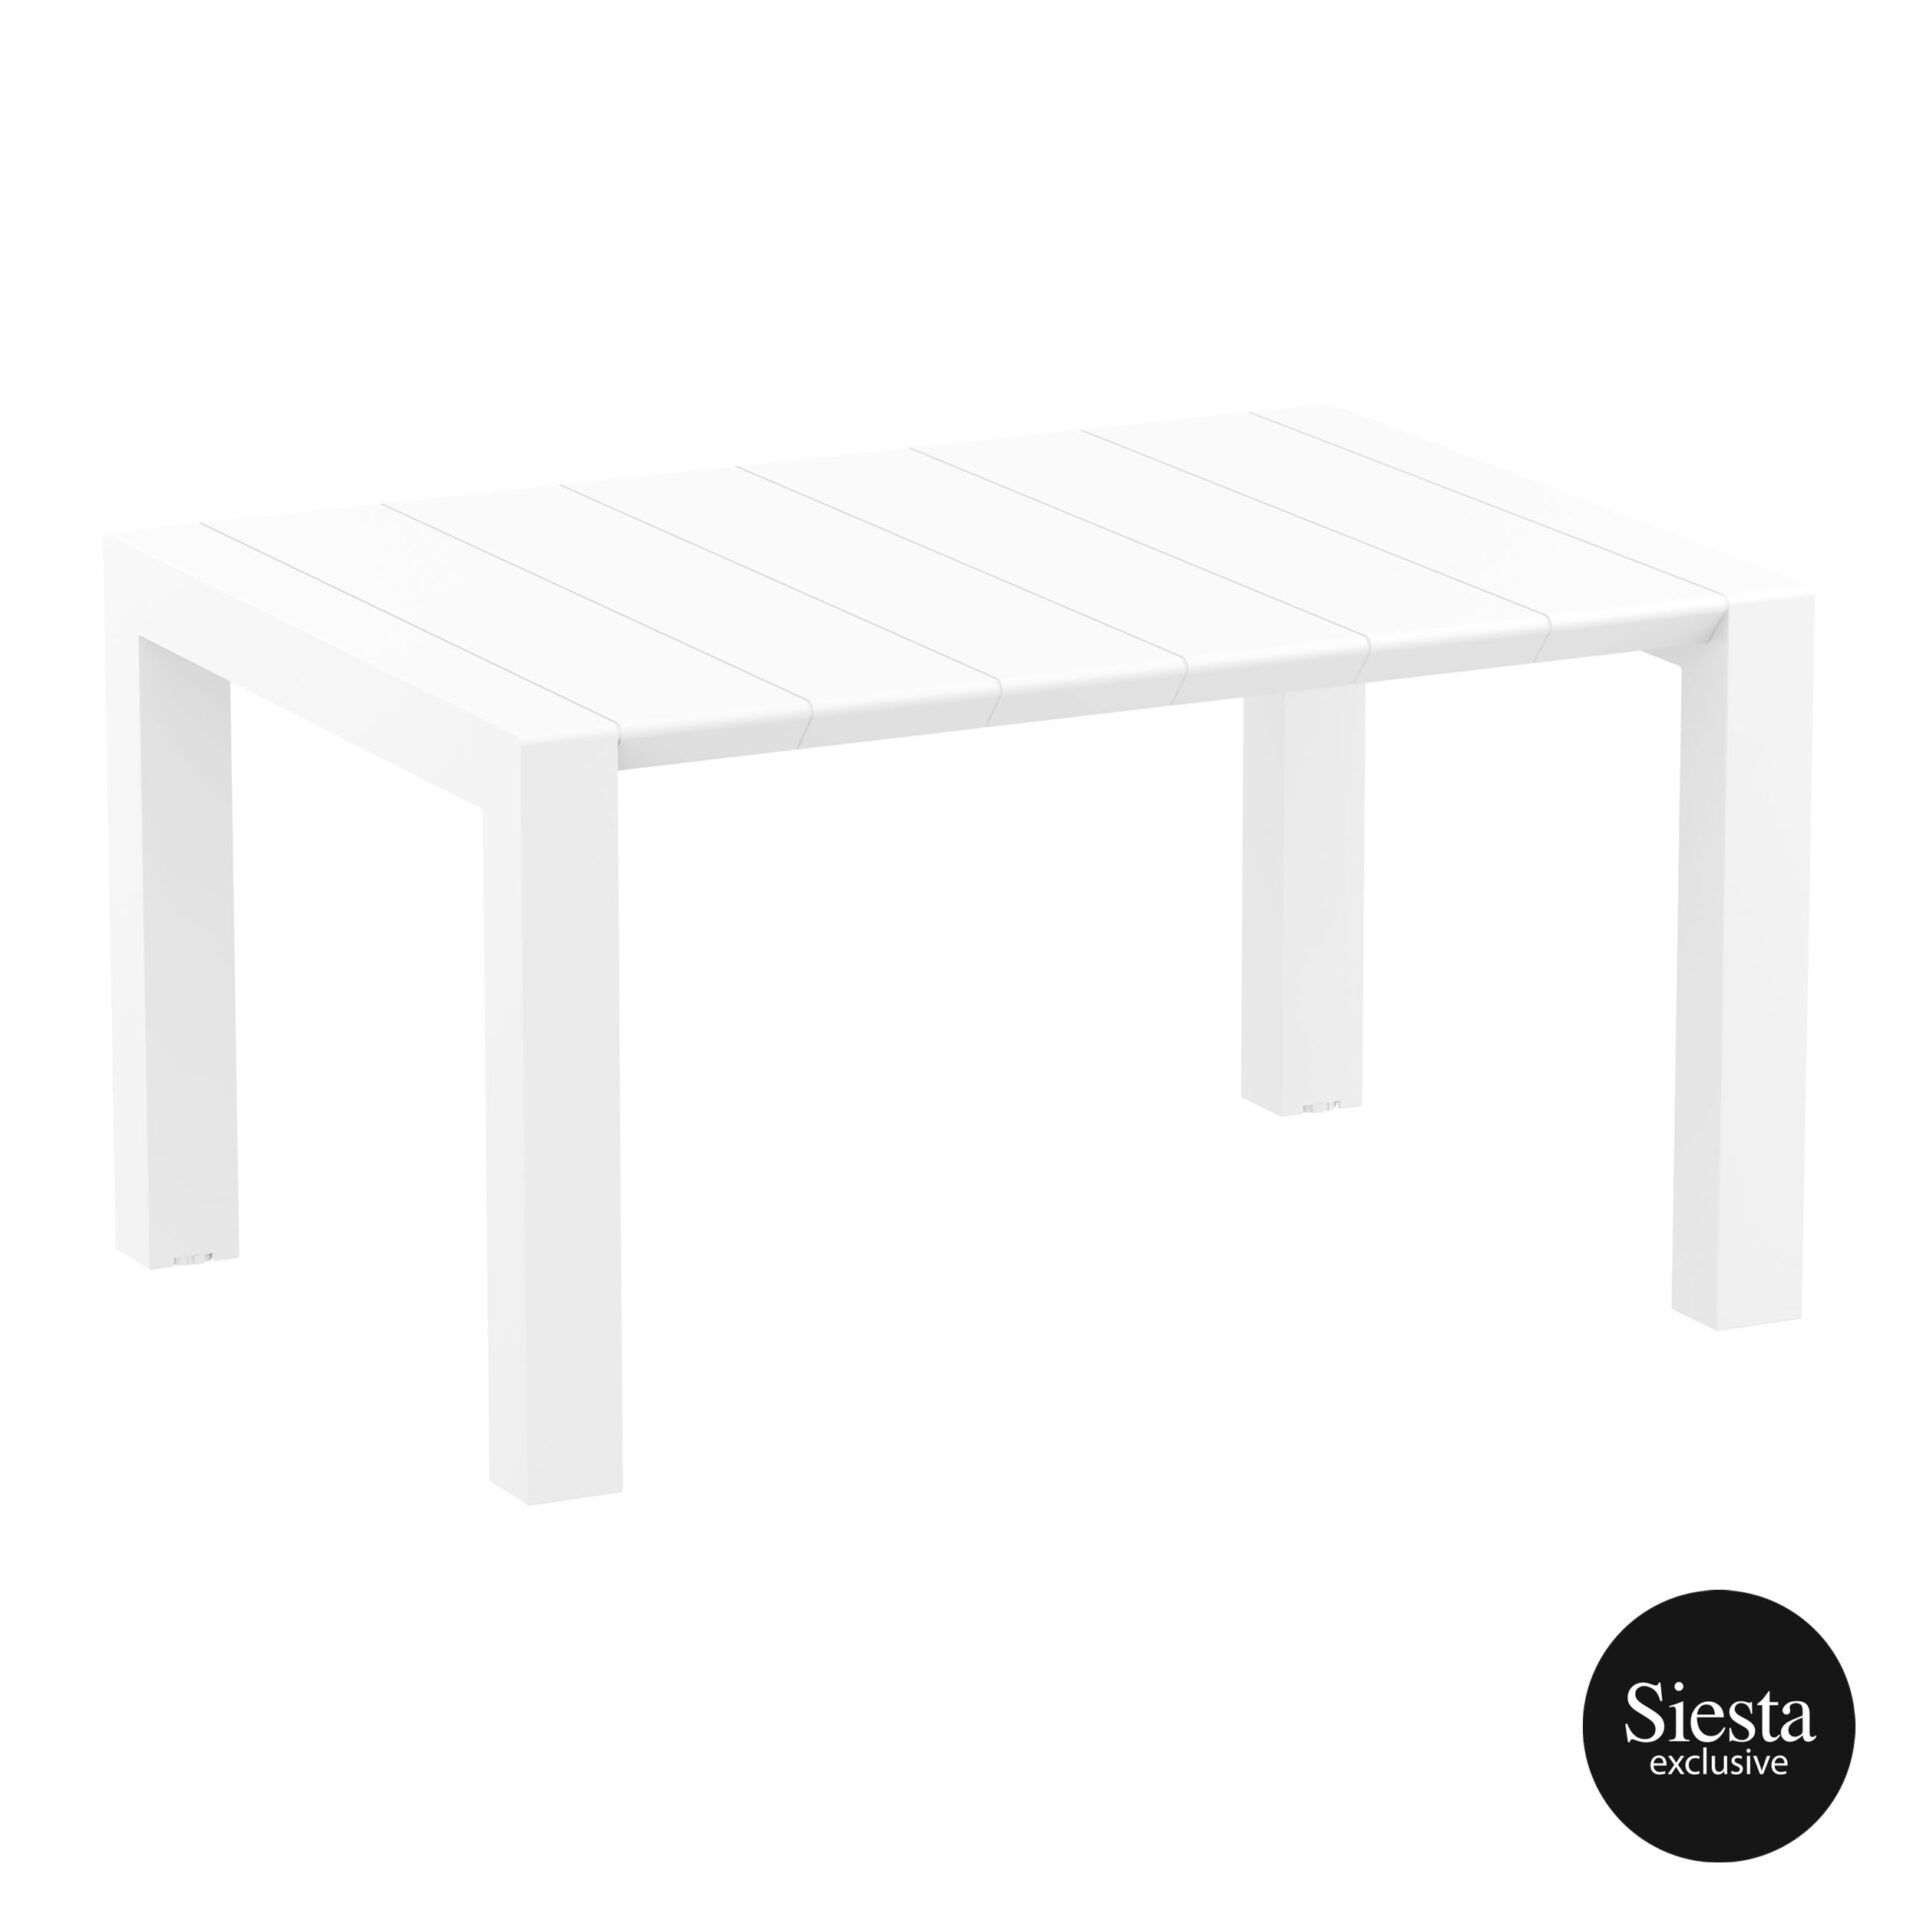 014 vegas table 140 white front side